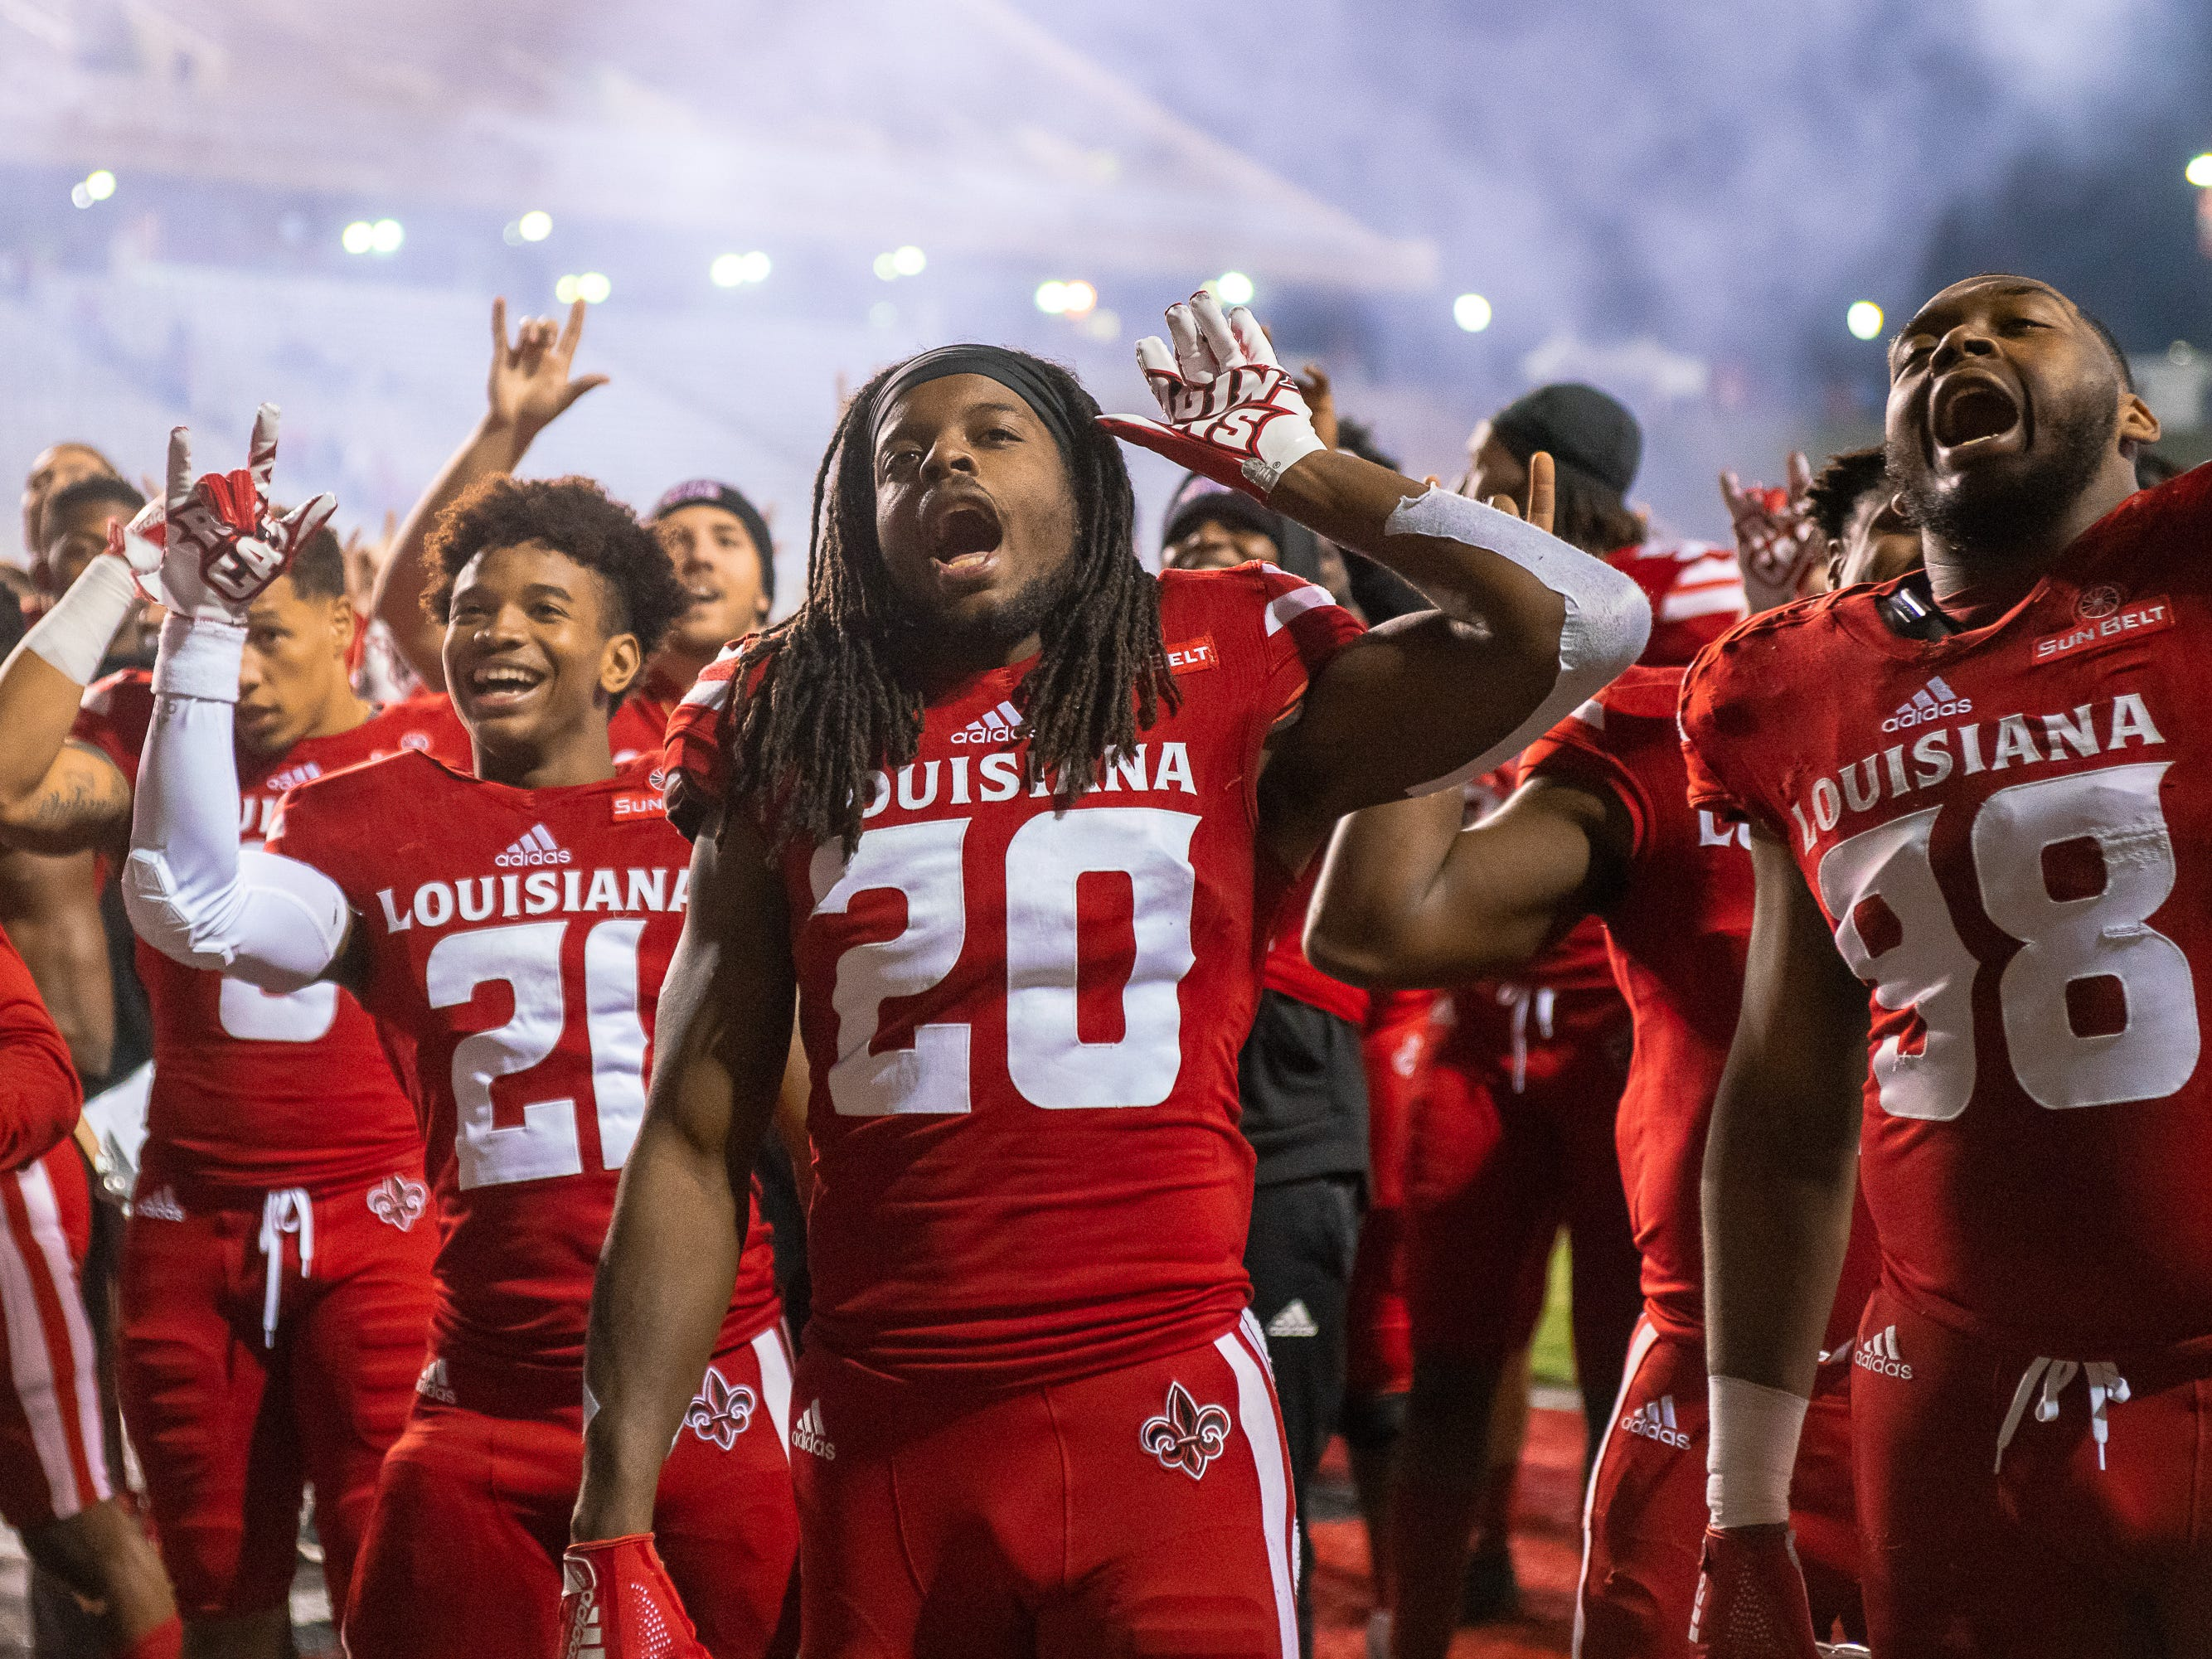 UL's Jarrod Jackson celebrates with his team after the game as the Ragin' Cajuns play against the South Alabama Jaguars at Cajun Field on November 17, 2018.